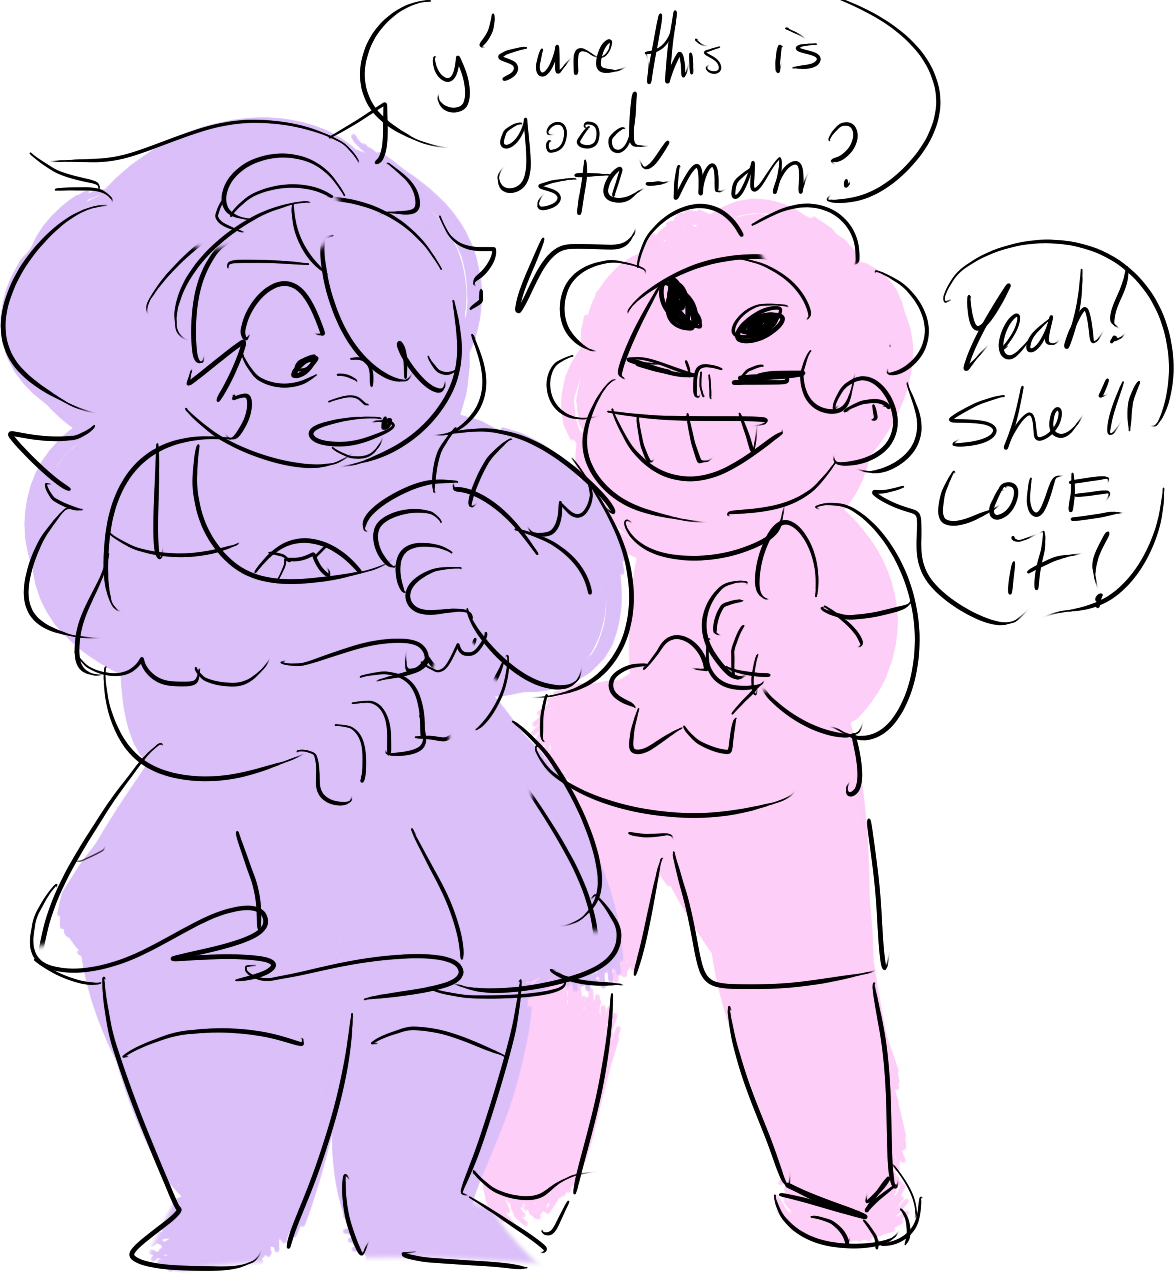 day 6 - date night feat. everyone's favorite fashion adviser and moral support pearlmethyst week organized by @fuckyeahpearlmethyst!